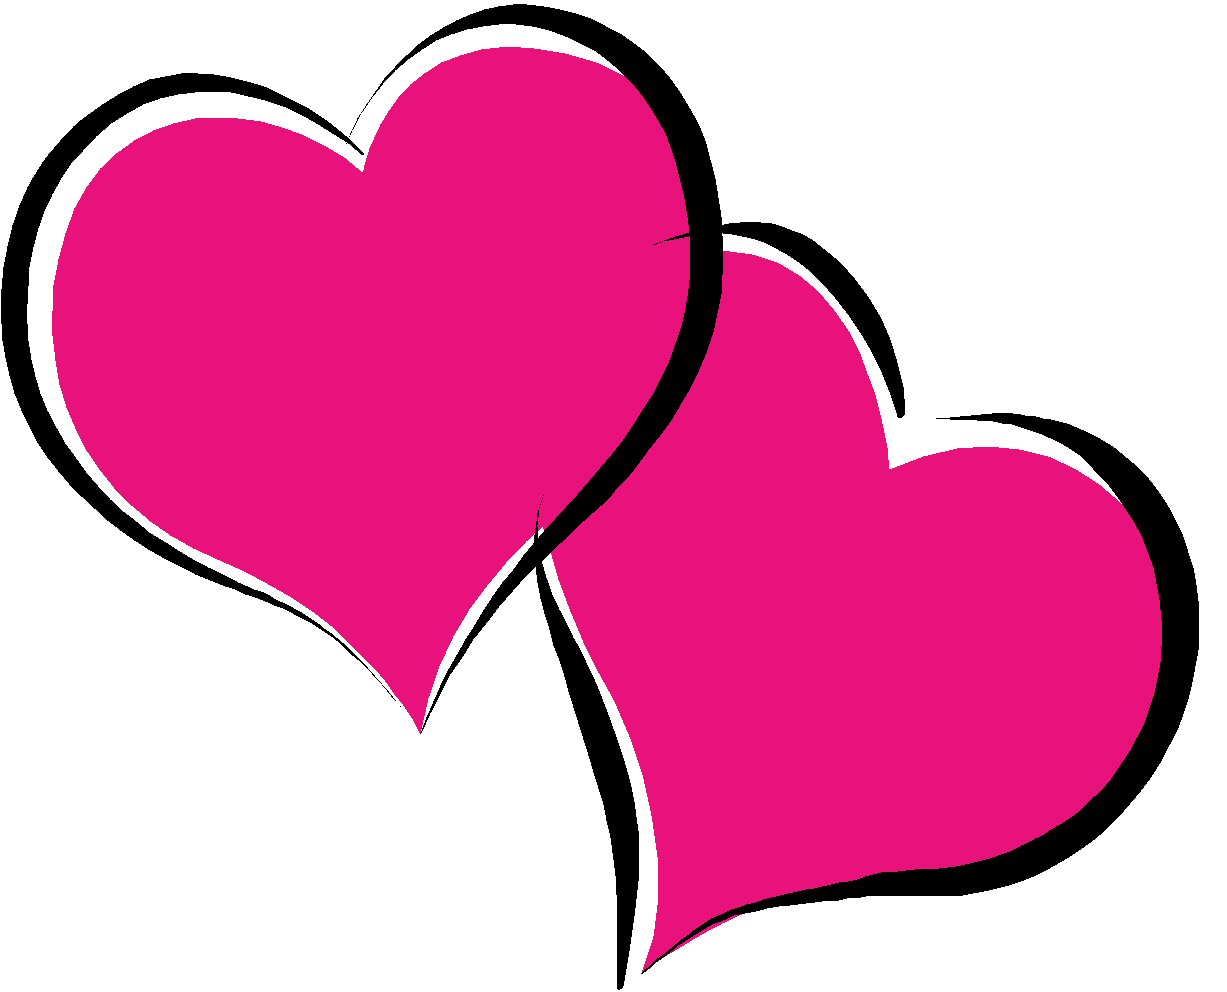 Double Heart Power Point Backgrounds Fre-Double Heart Power Point Backgrounds Free Download; Purple Intertwined Hearts clip art ...-6